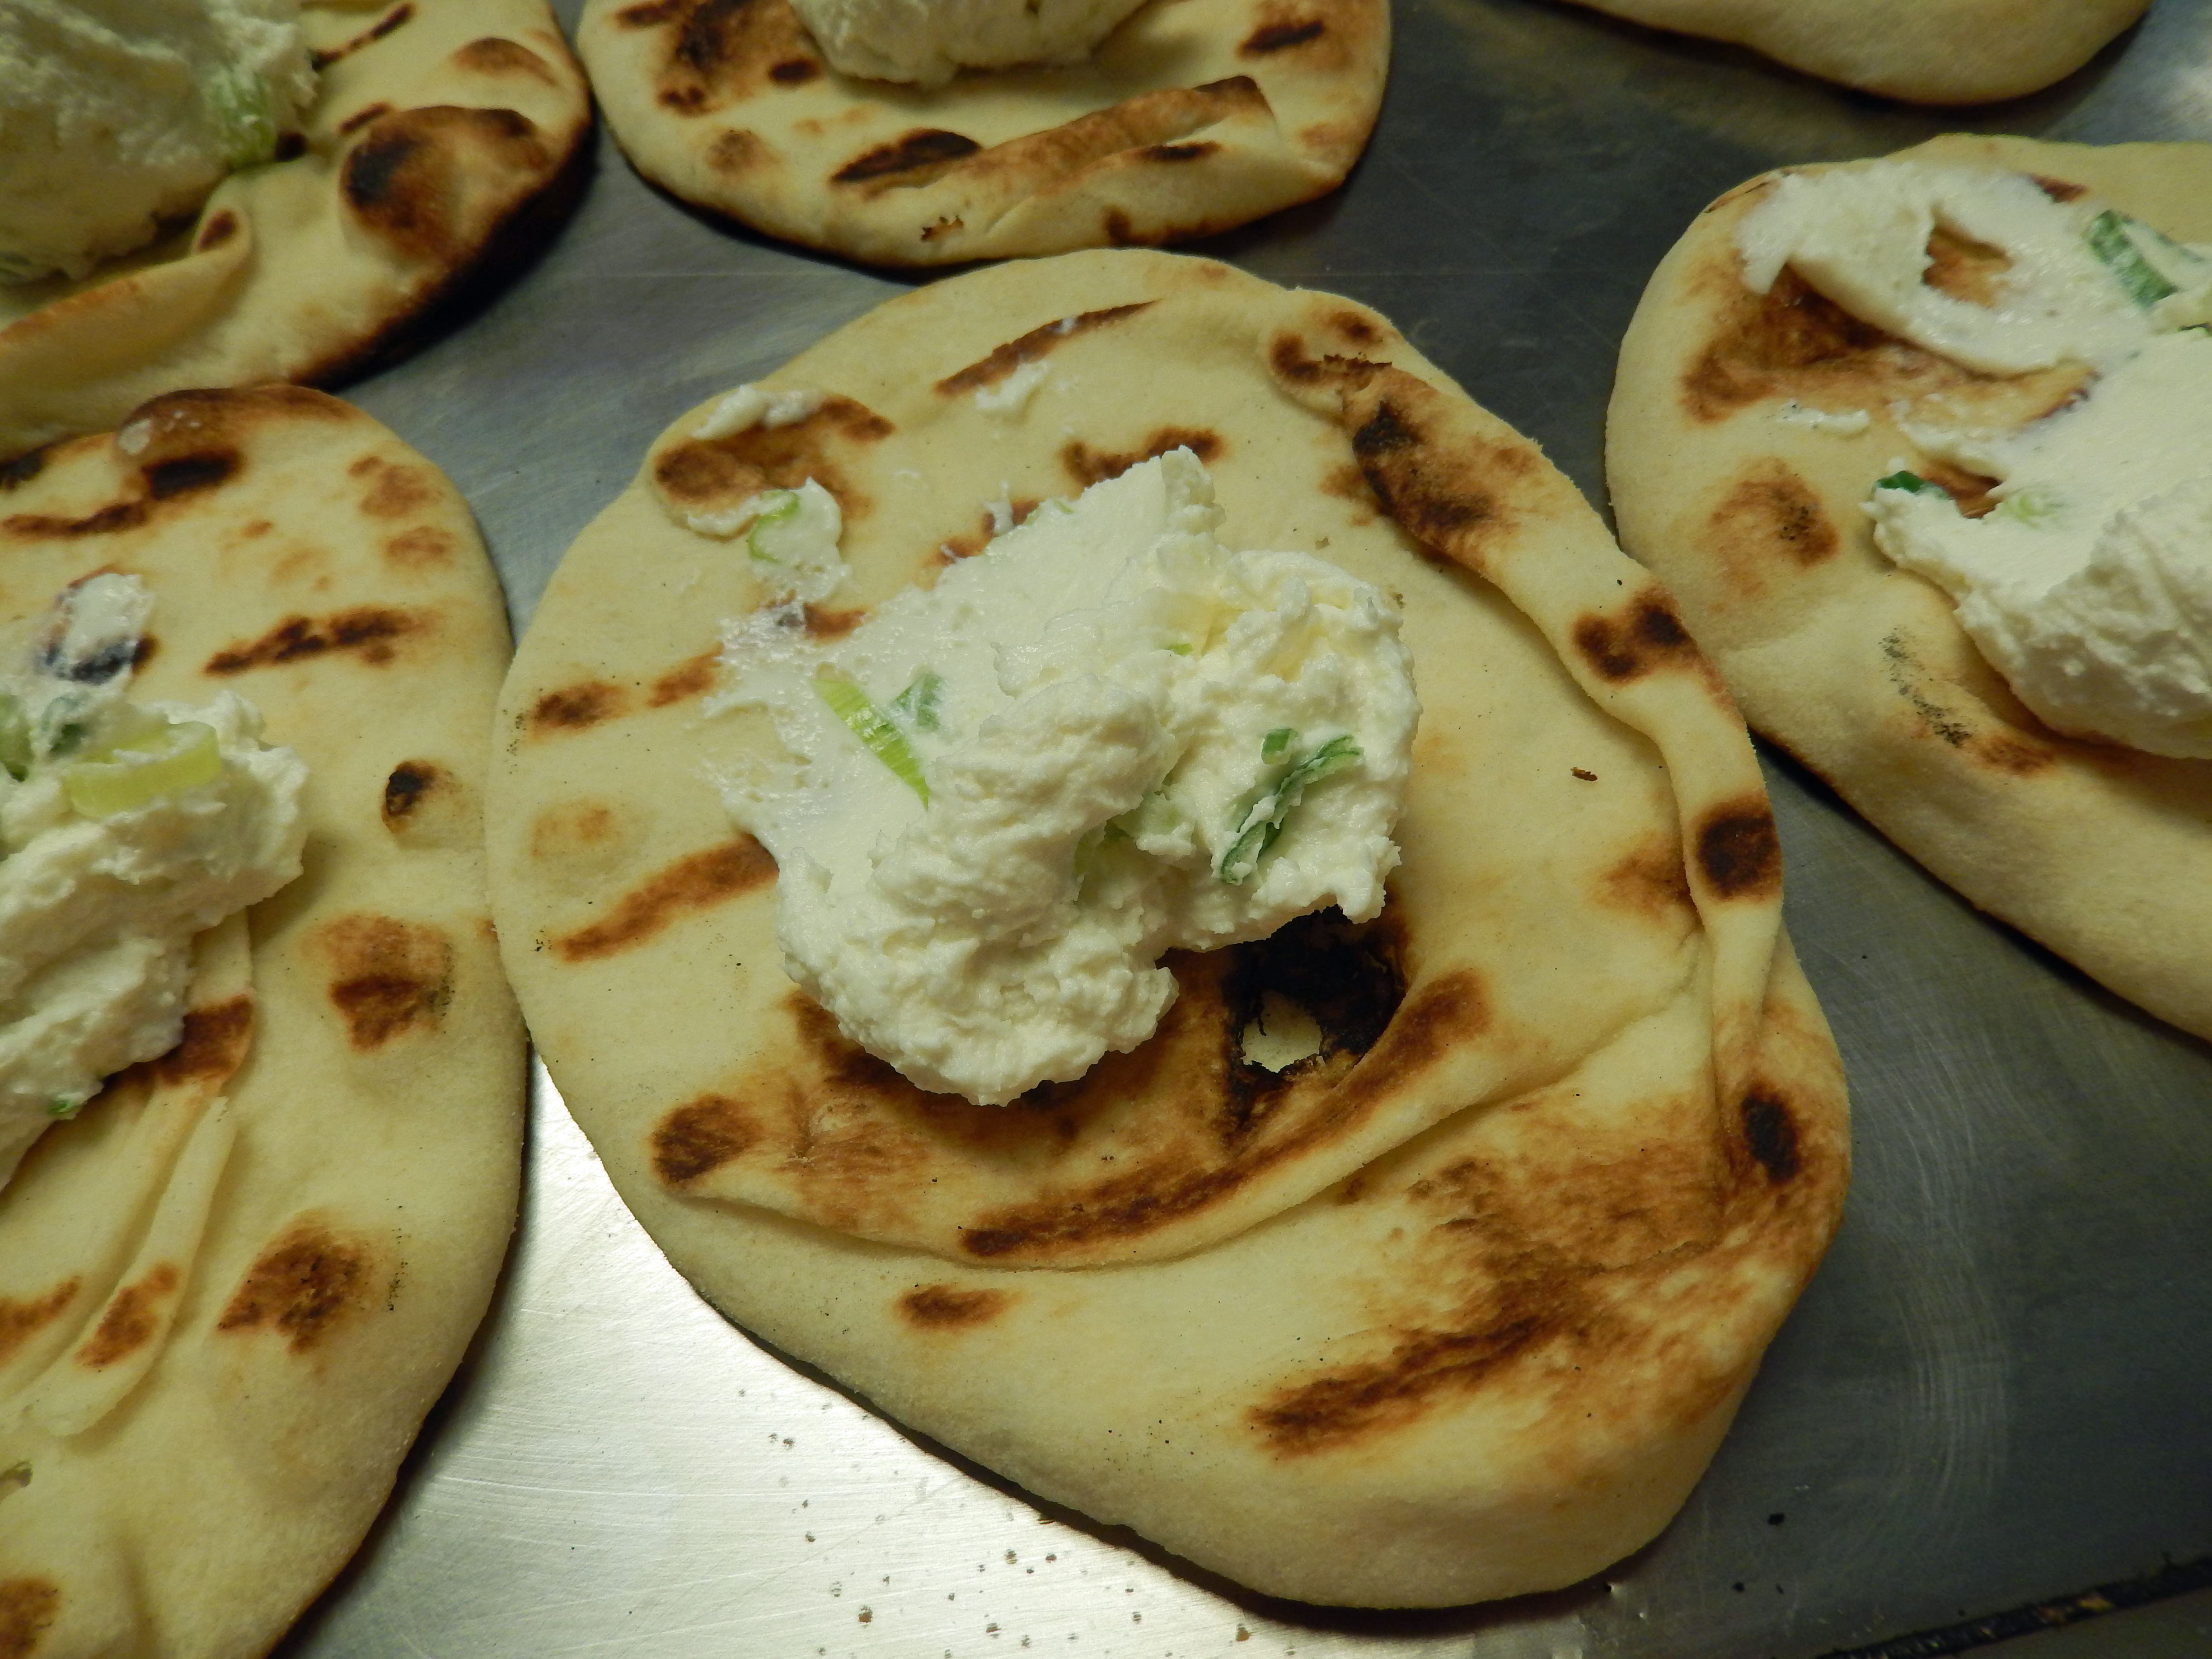 Spread the whipped cheese mixture on the flatbreads.